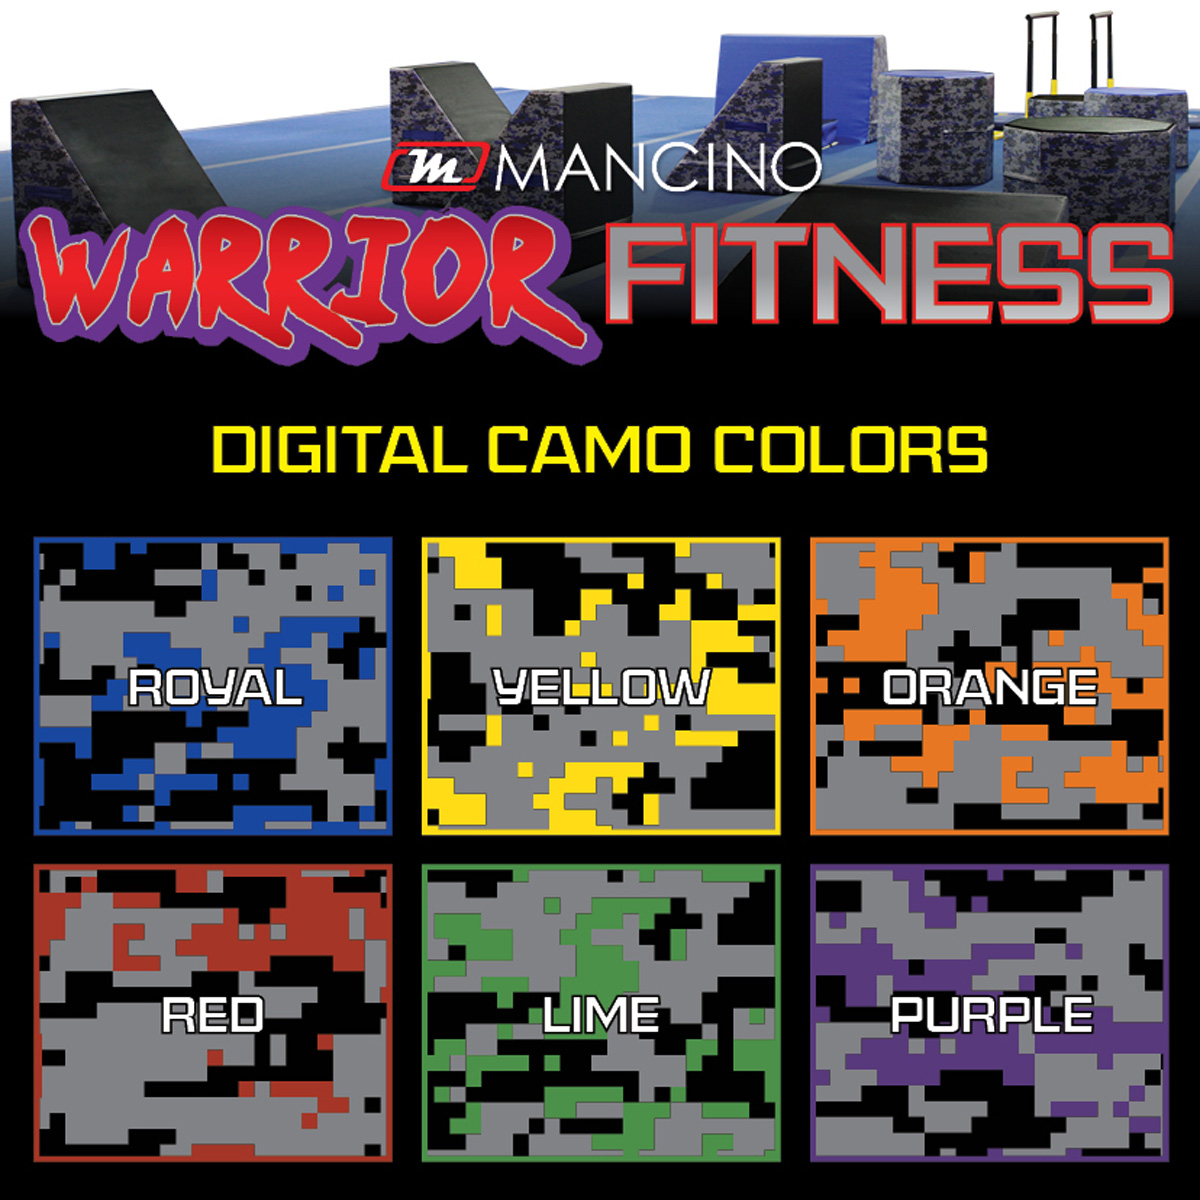 warrior fitness color options